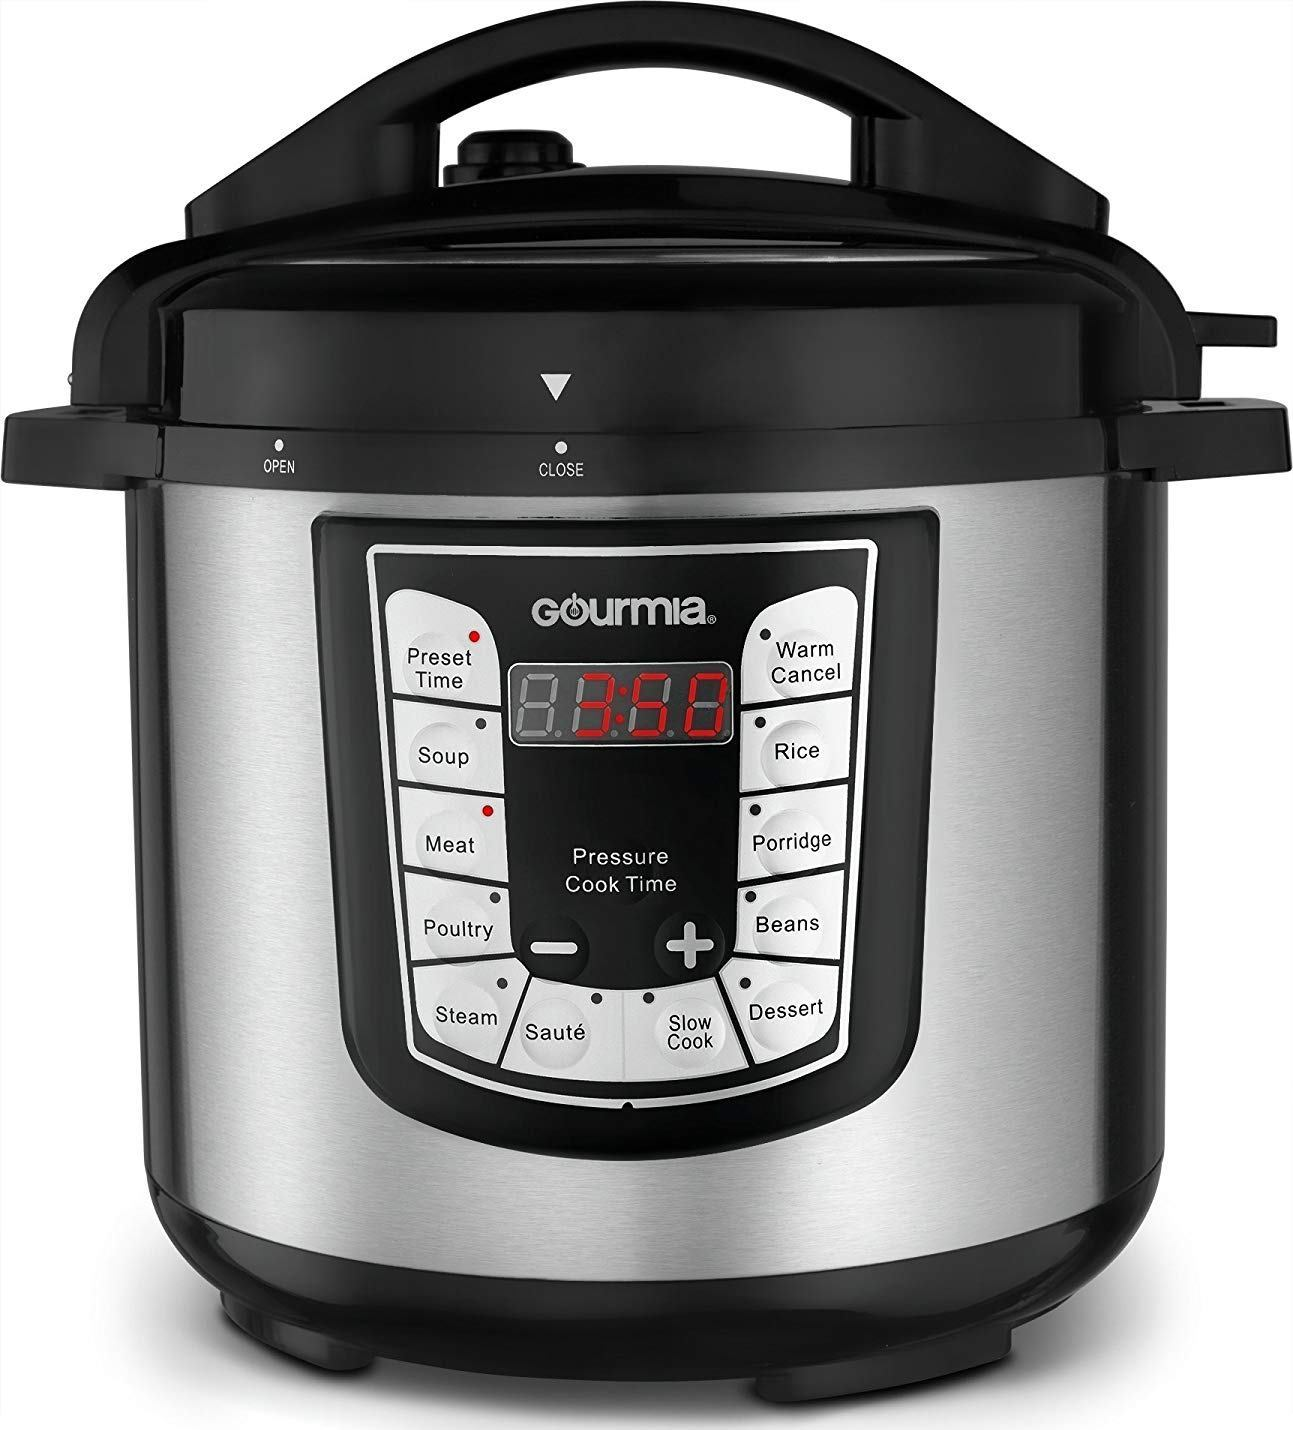 gourmia gpc625 smart pot pressure cooker